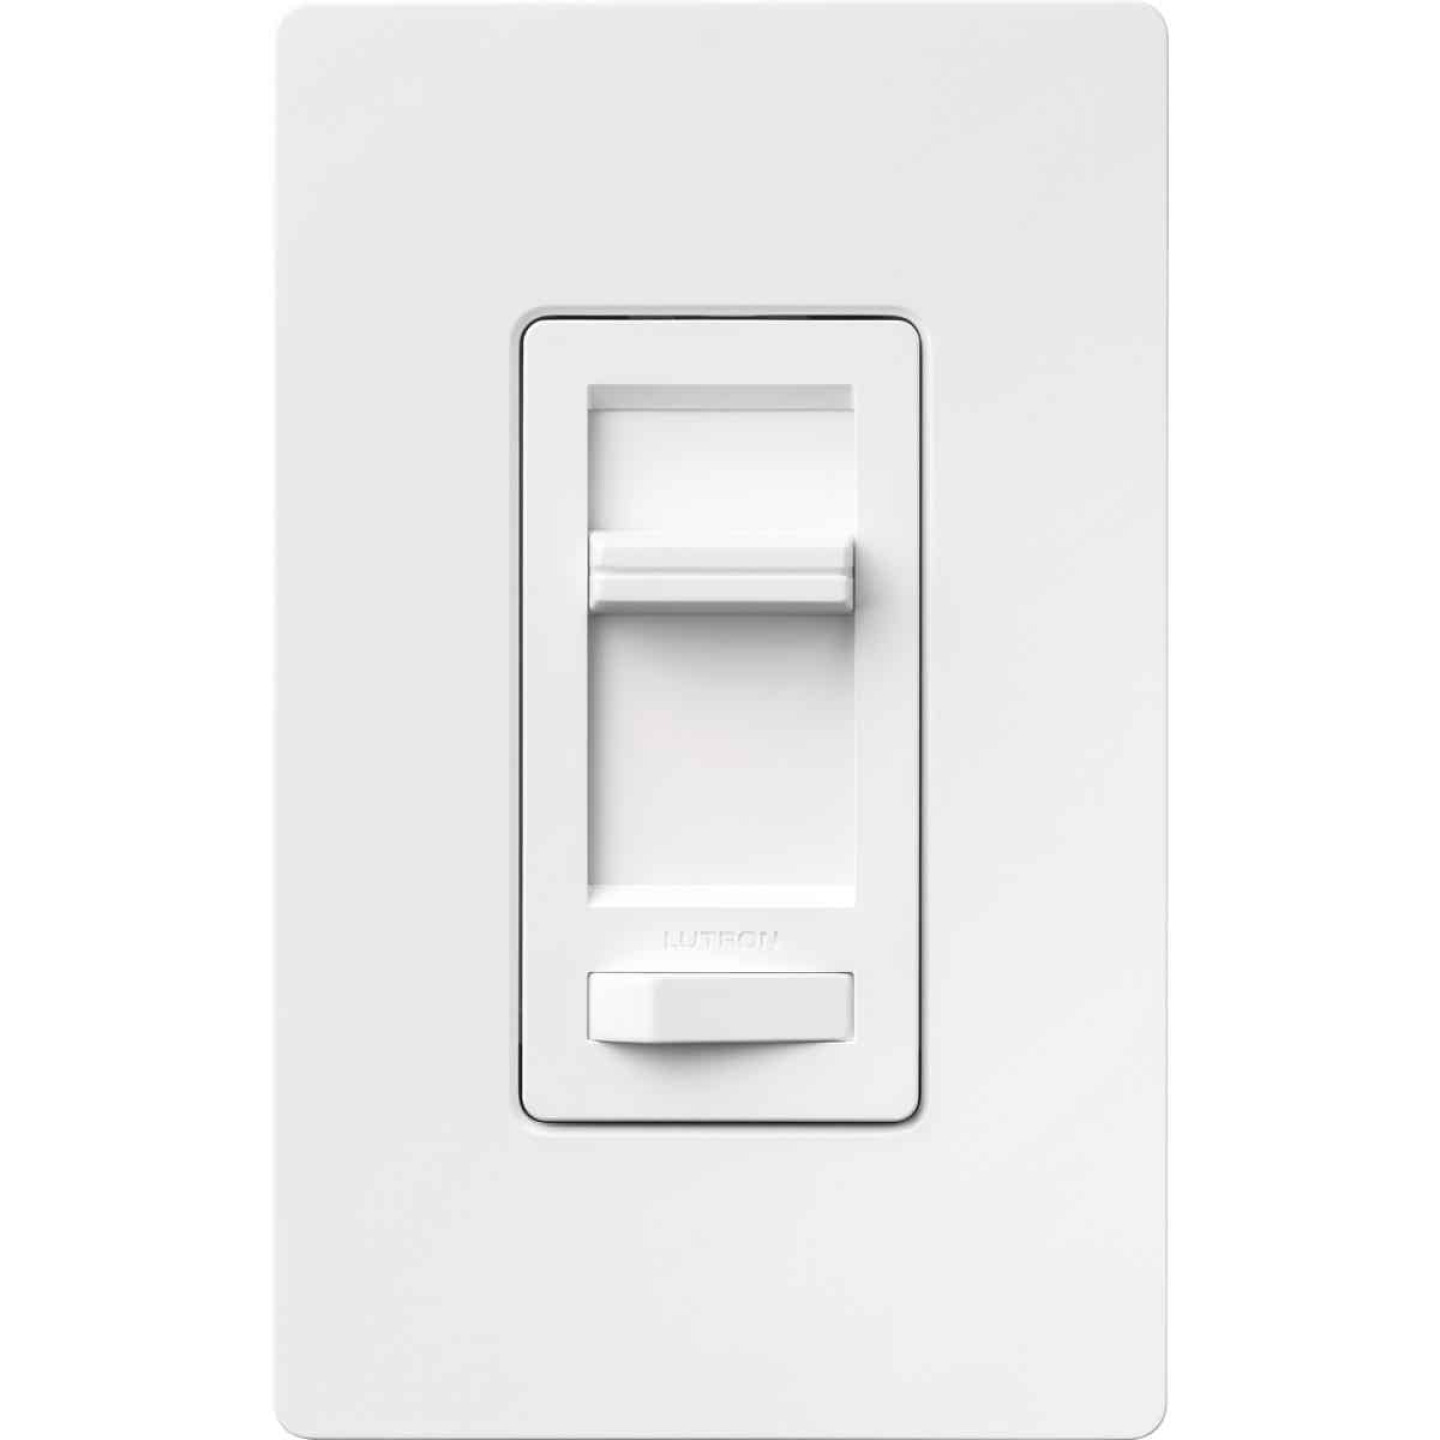 Lutron Lumea Incandescent/Halogen/LED/CFL White Slide Dimmer Switch Image 9